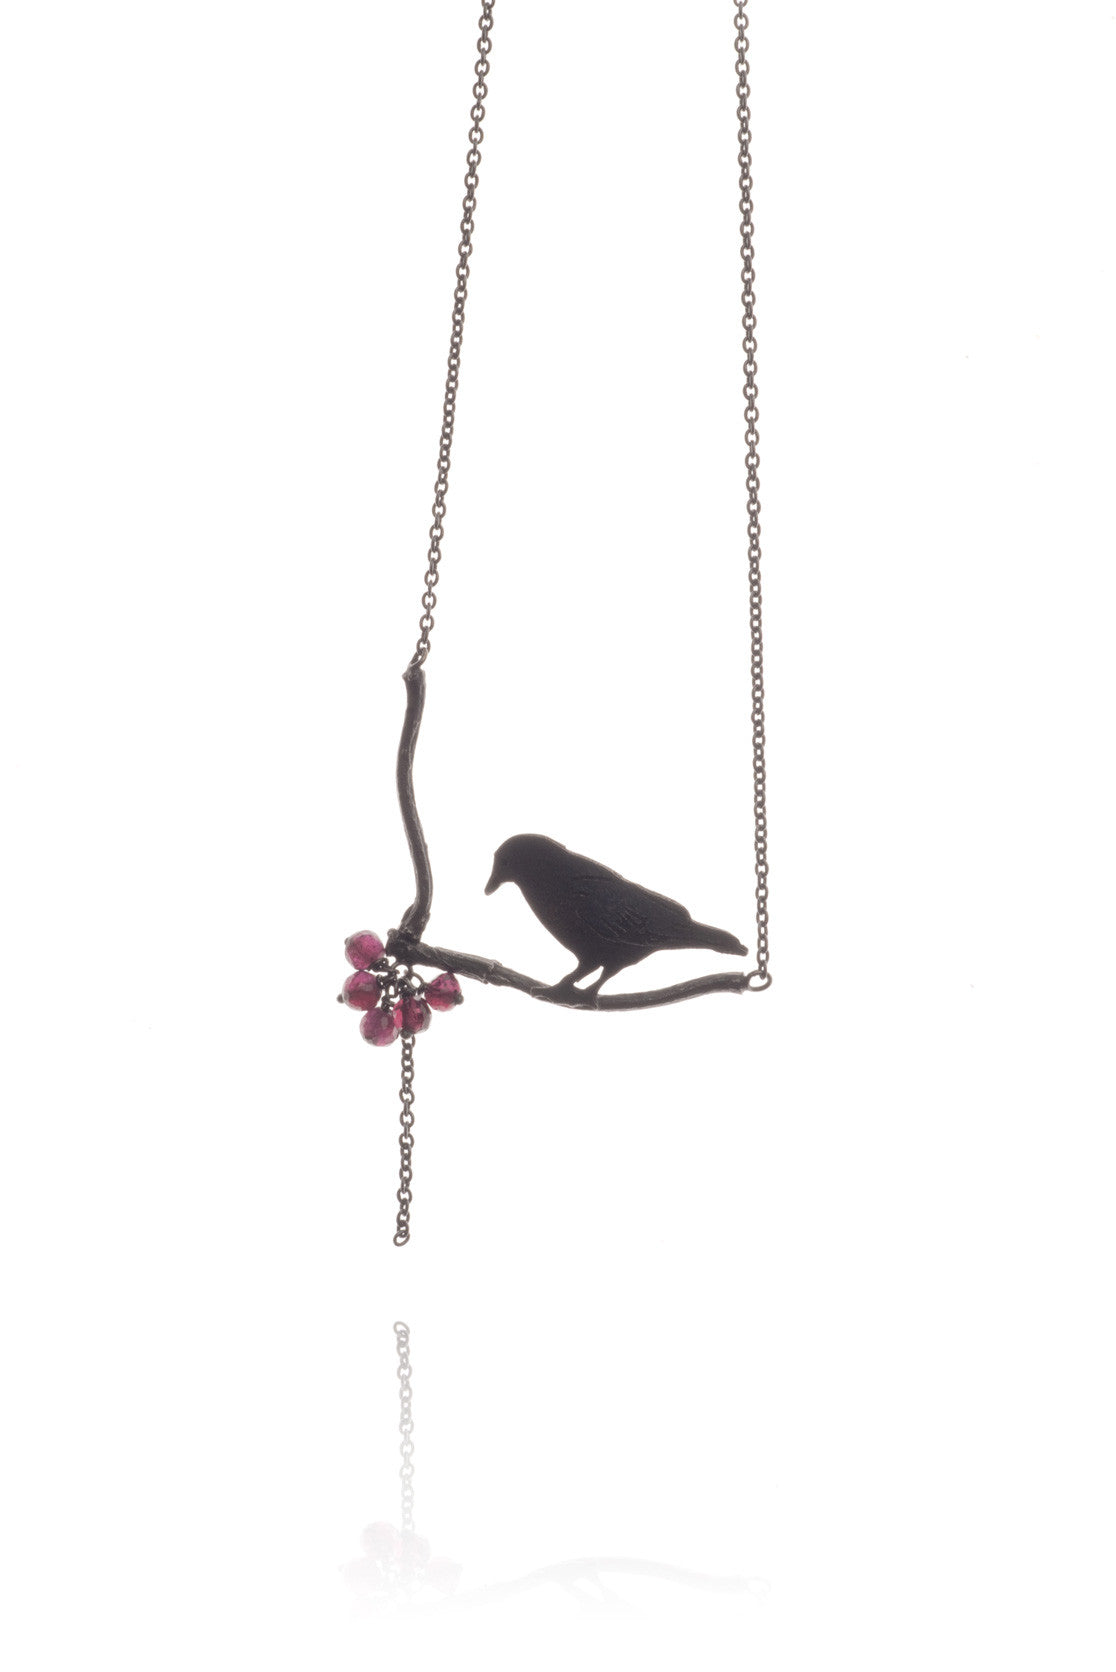 Raven Looking At Berries Necklace